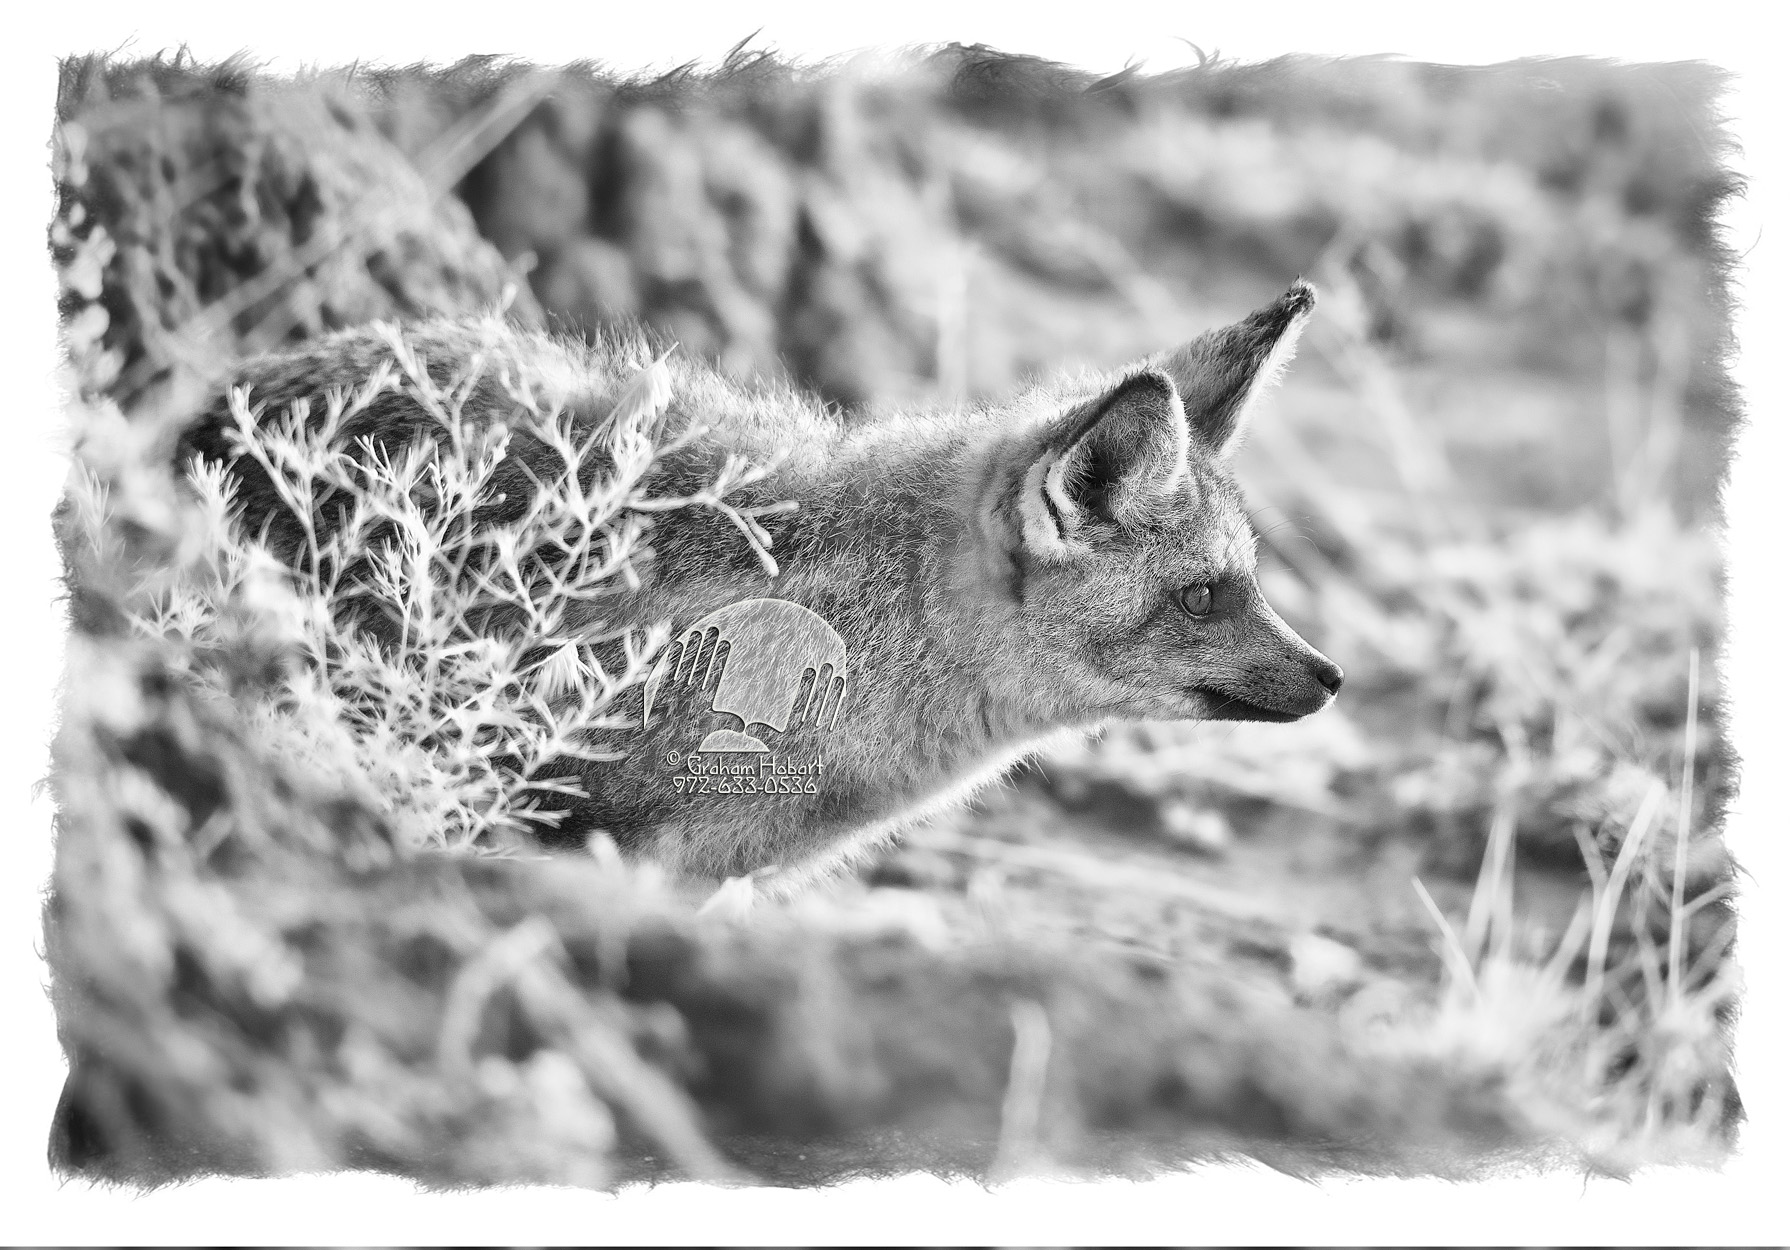 Bat-eared Fox Emerges From Den #1 (2012) by In a Different Light in Regular Member Gallery